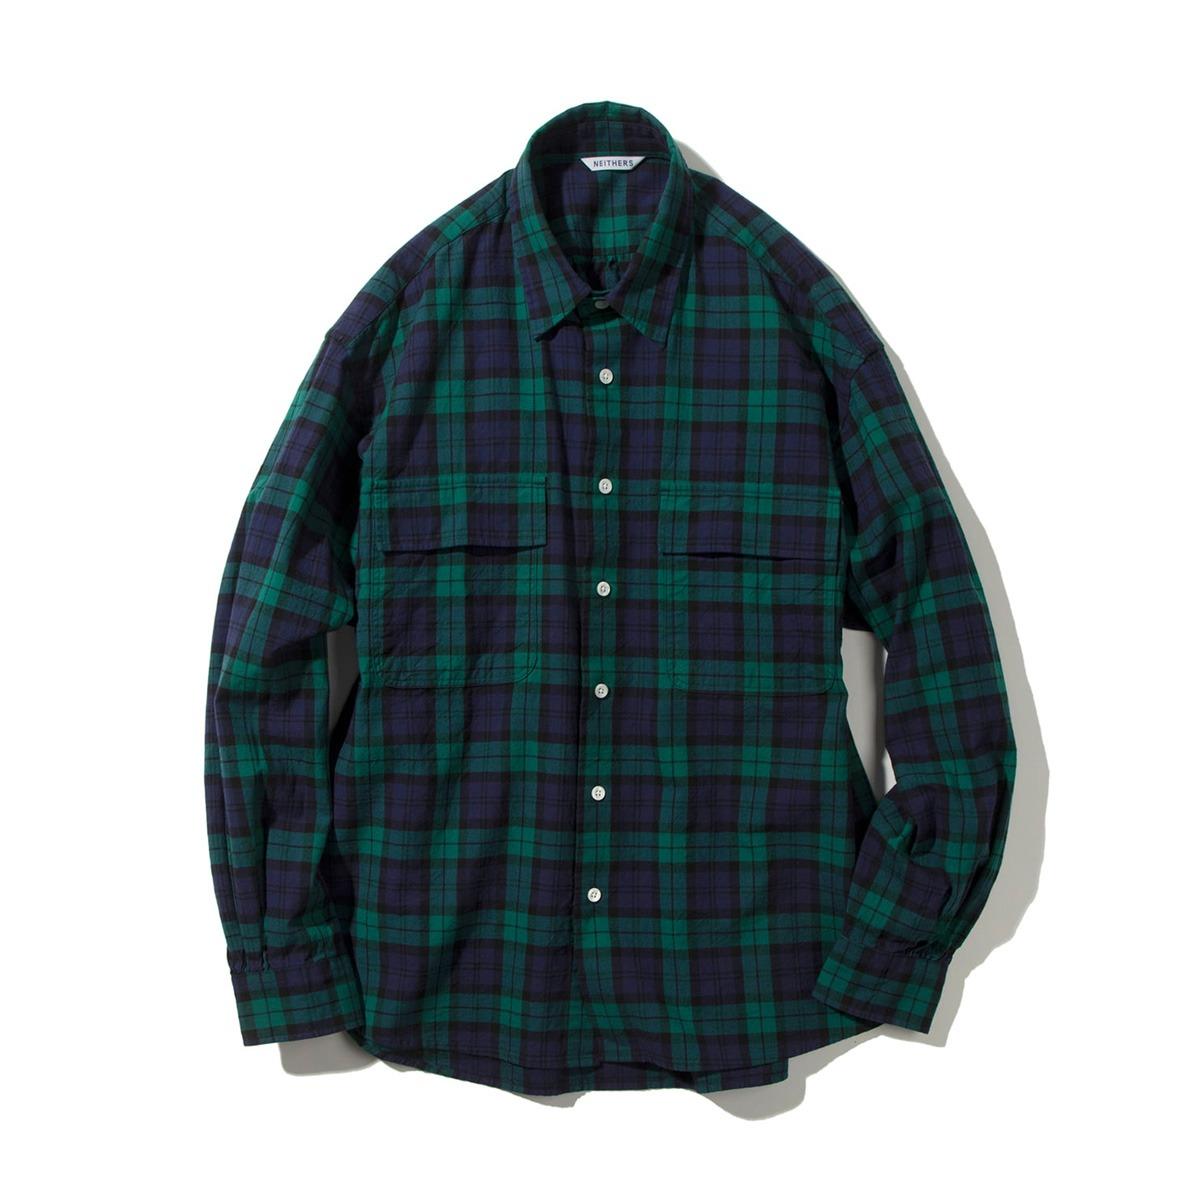 [NEITHERS] 211-3 2-POCKET WIDE SHIRT 'GR/NV'